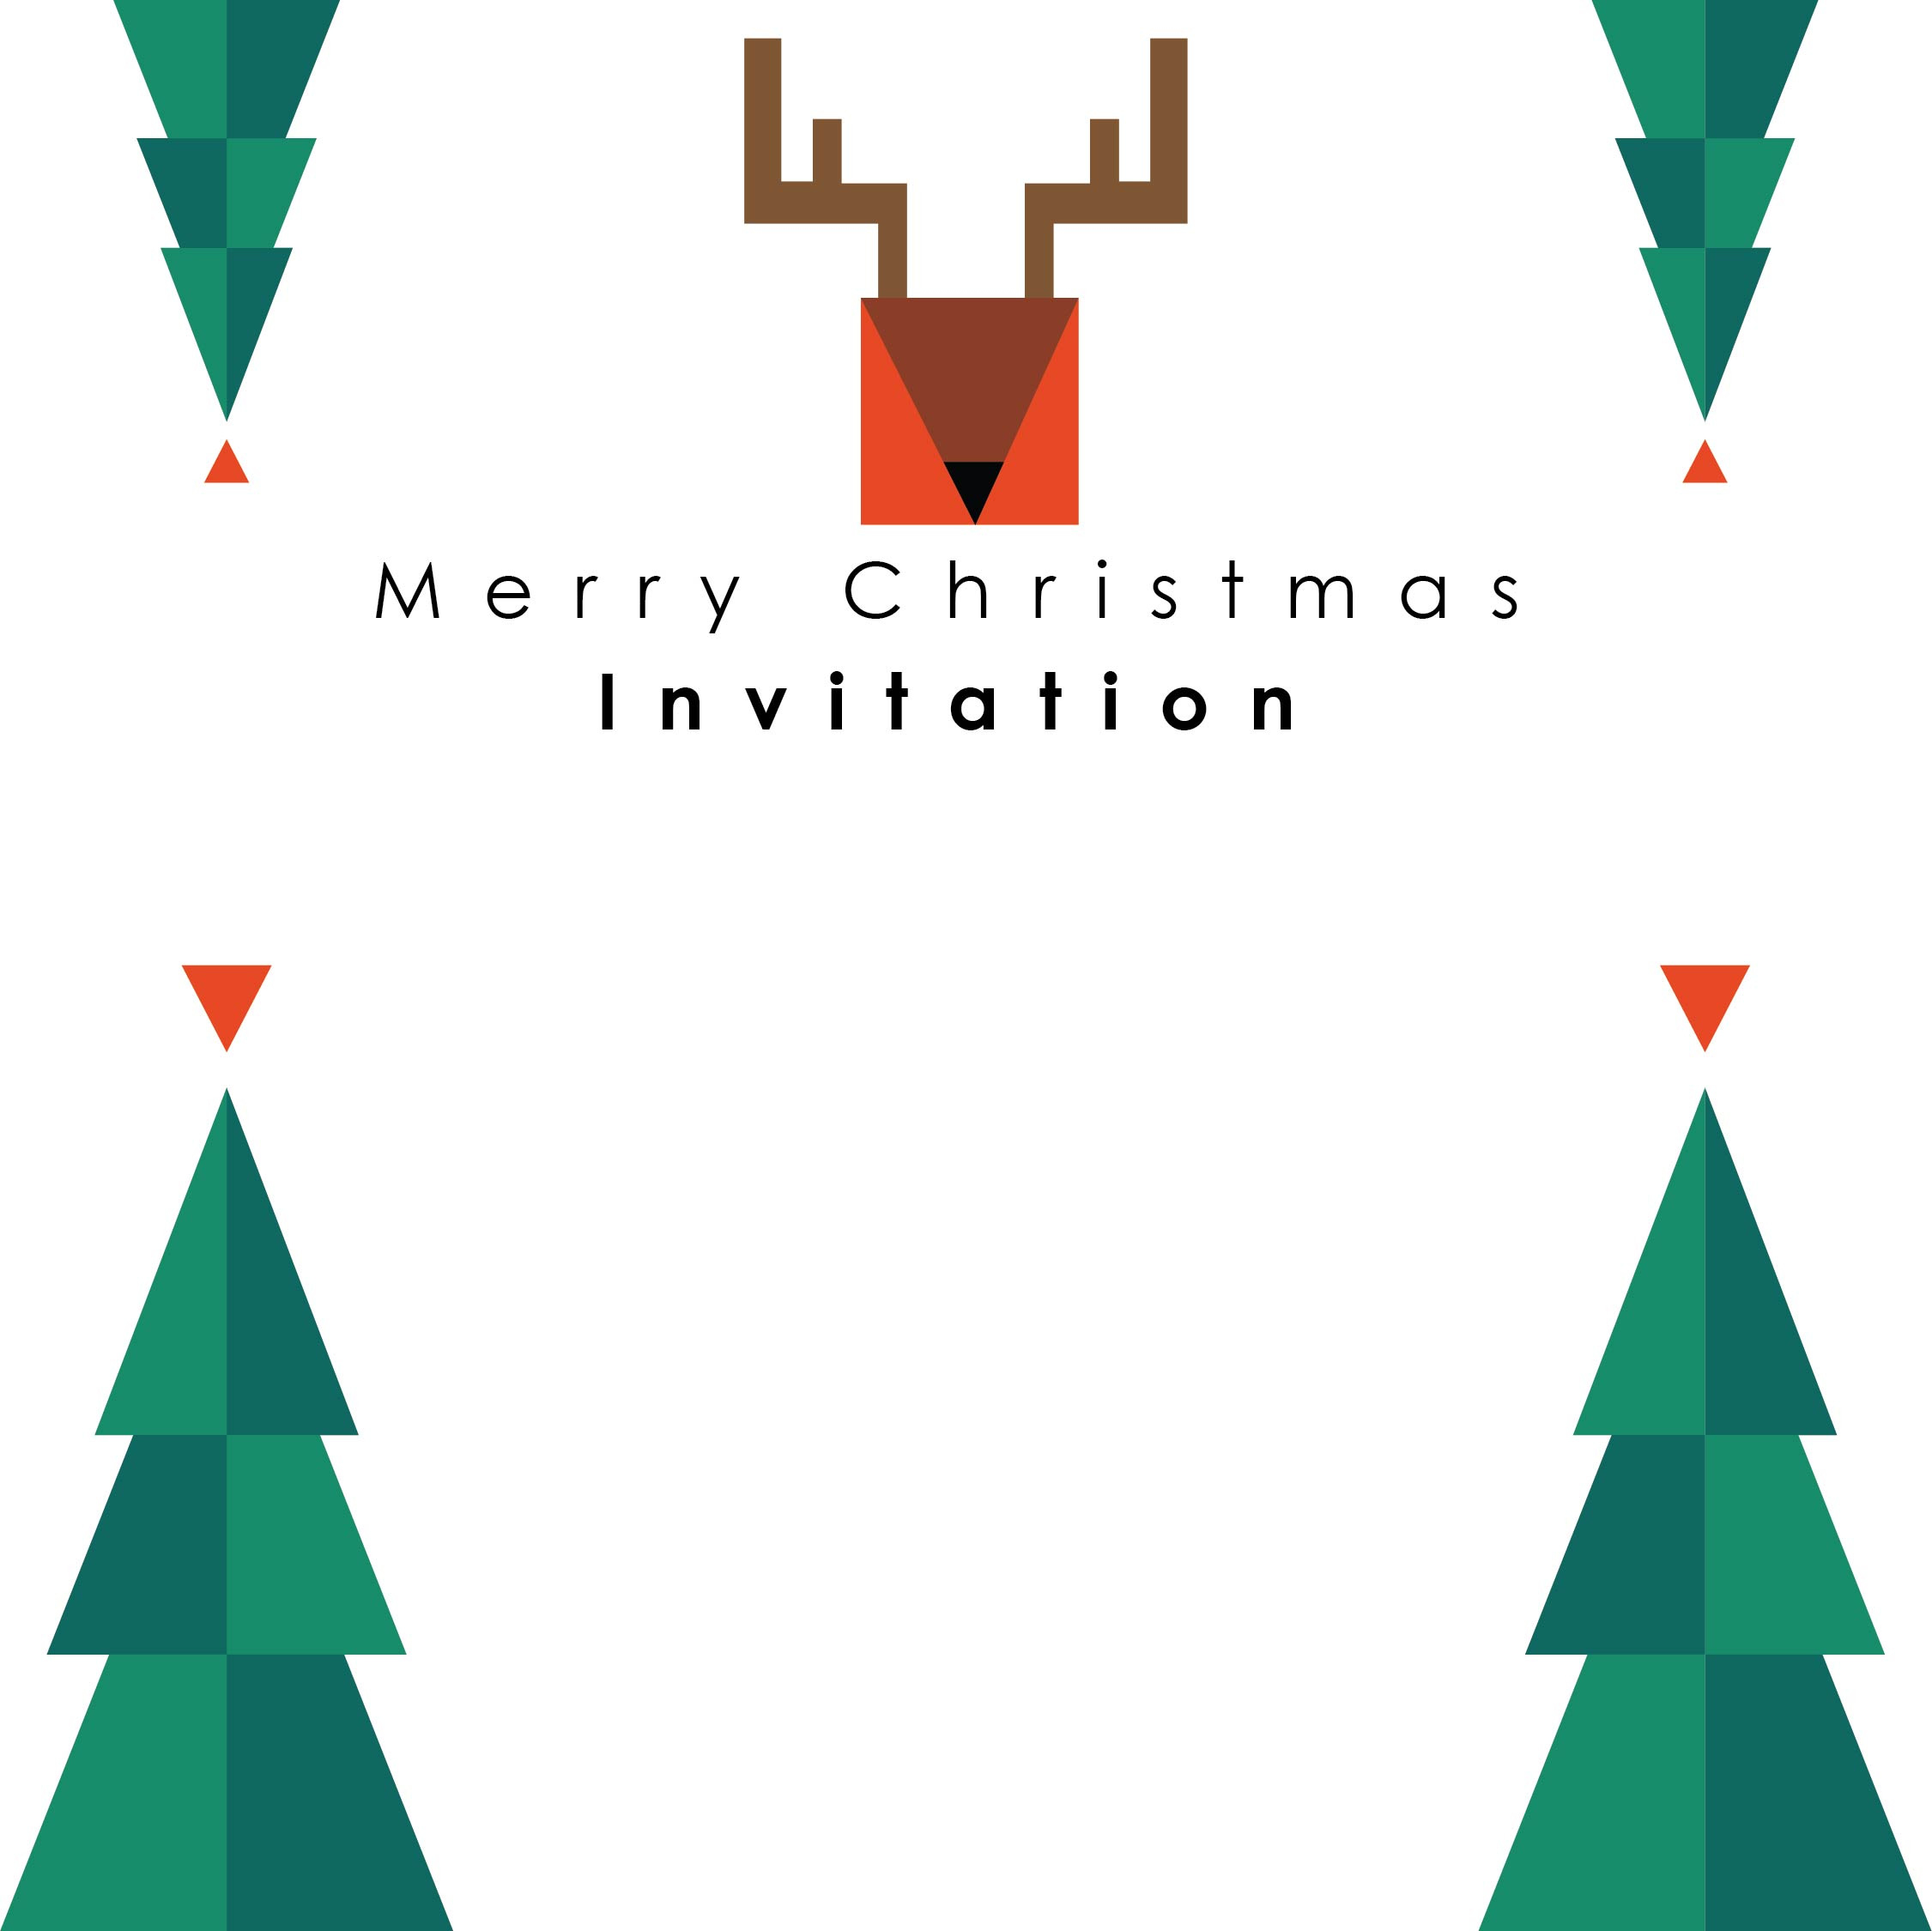 7 Best Images of Christmas Coloring Printable Invitations ...